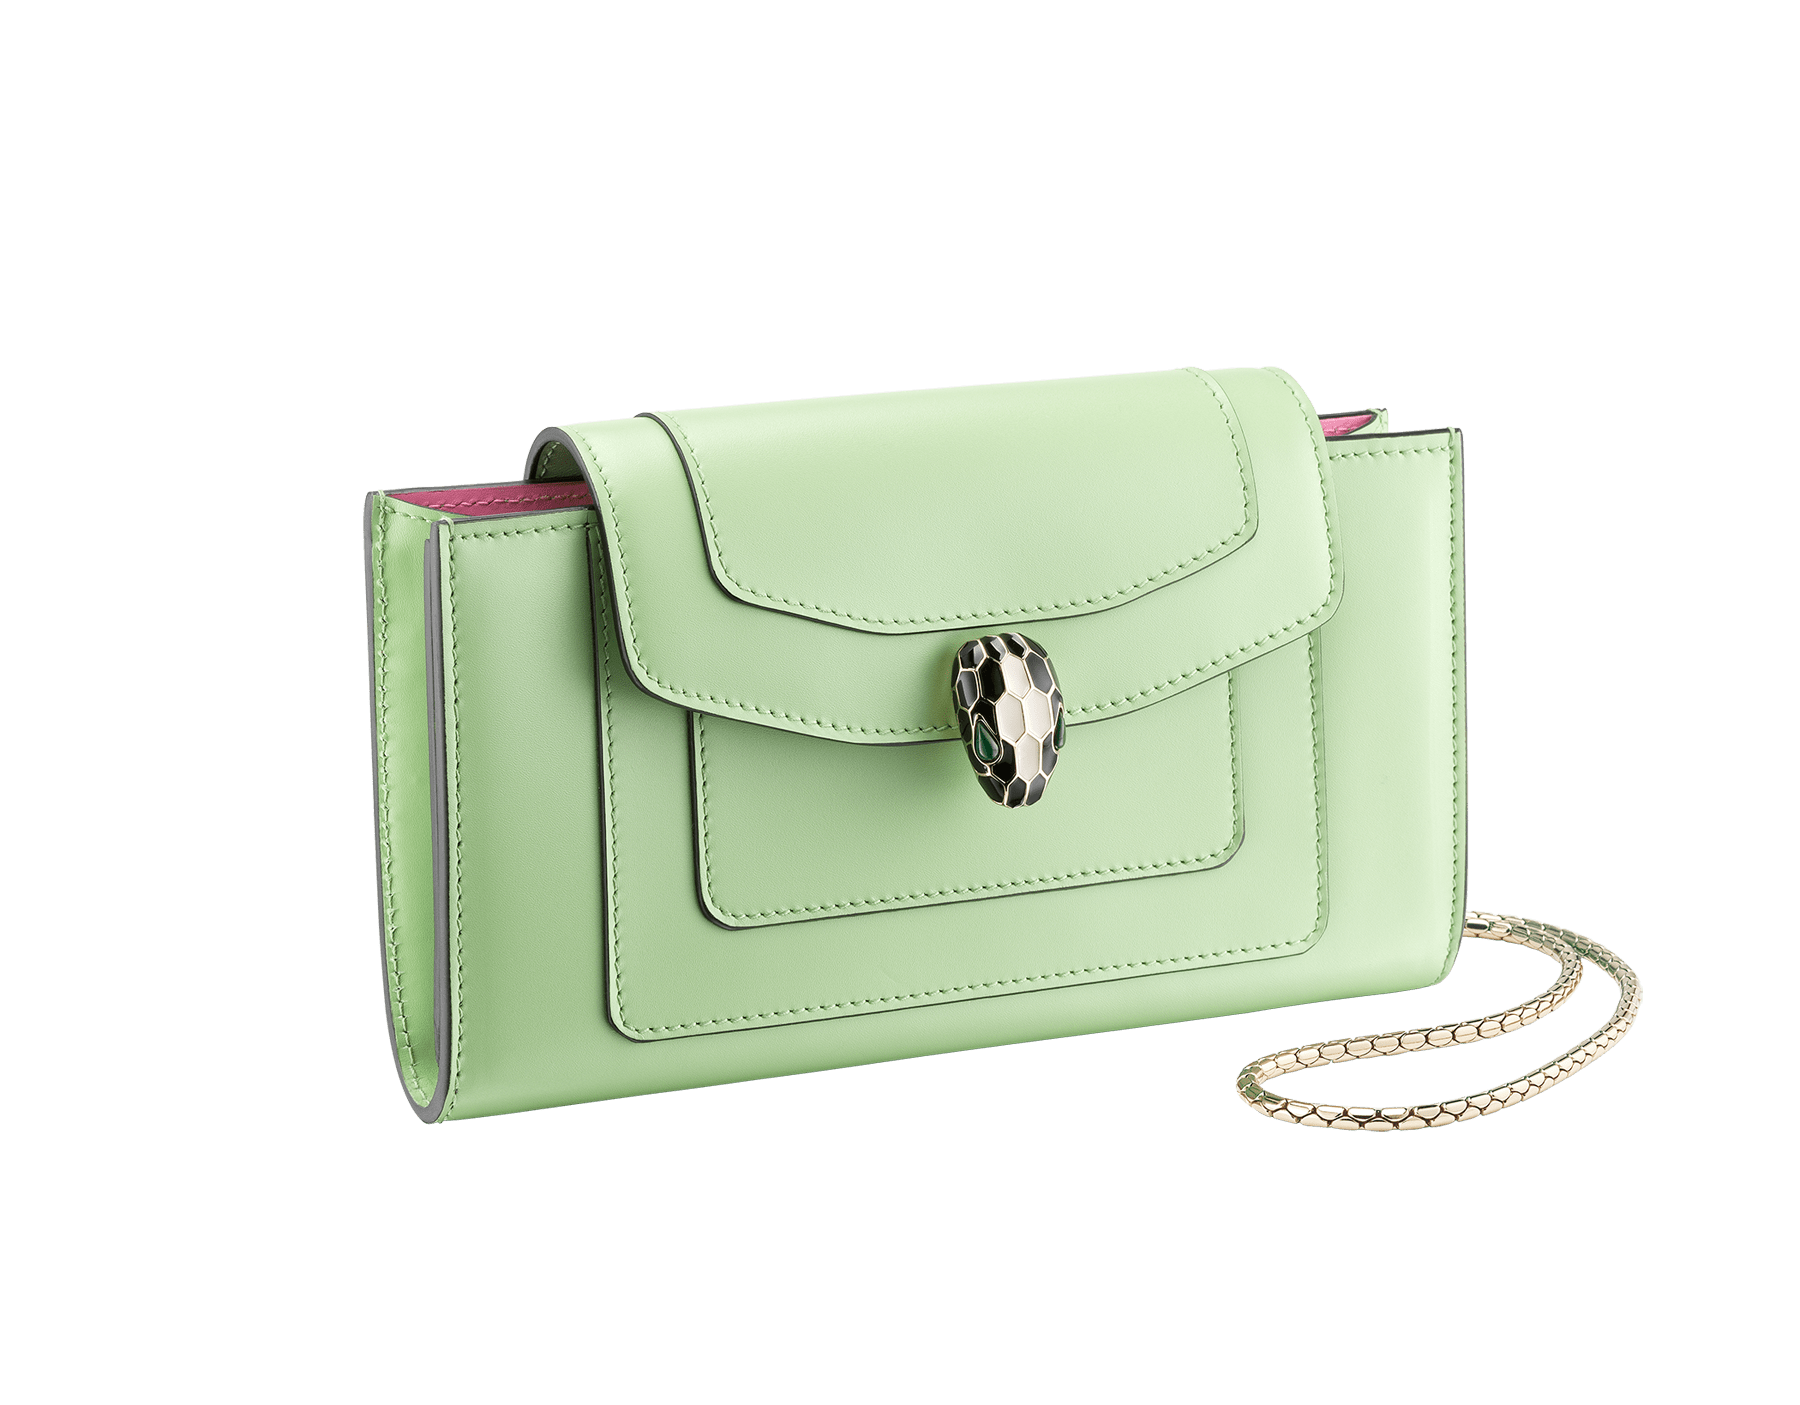 """""""Serpenti Forever"""" device case in mint and taffy quartz calf leather. Light gold plated brass snakehead closure in black and white enamel with green malachite eyes. 290013 image 1"""